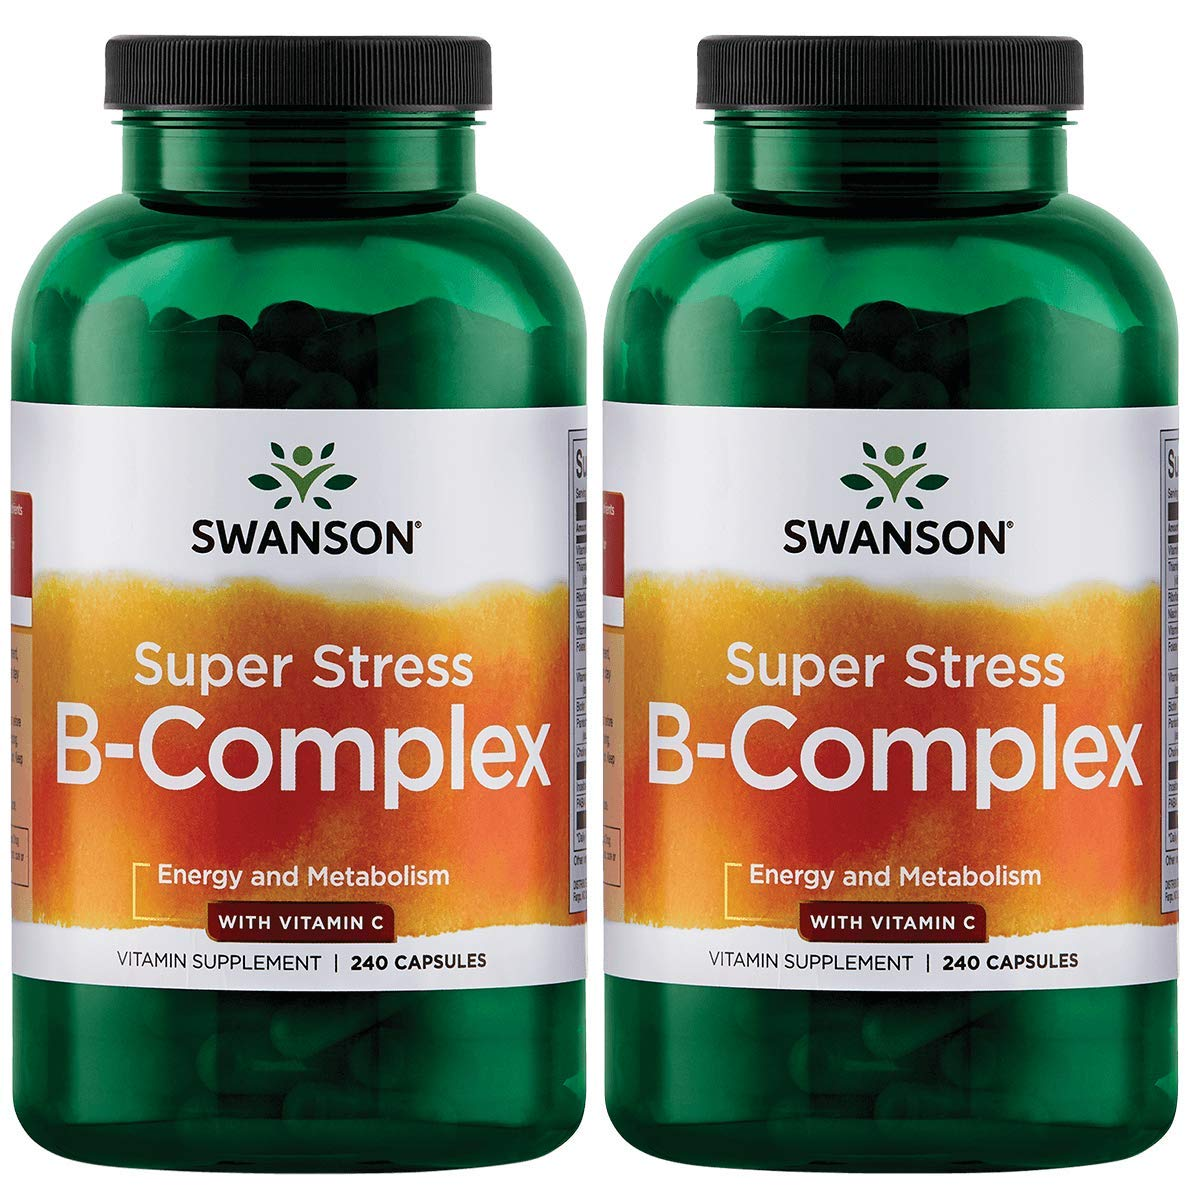 Swanson B Vitamin Stress Complex with Vitamin C Stress Relief Energy Immune Health 500 mg 240 Capsules (2 Pack) by Swanson